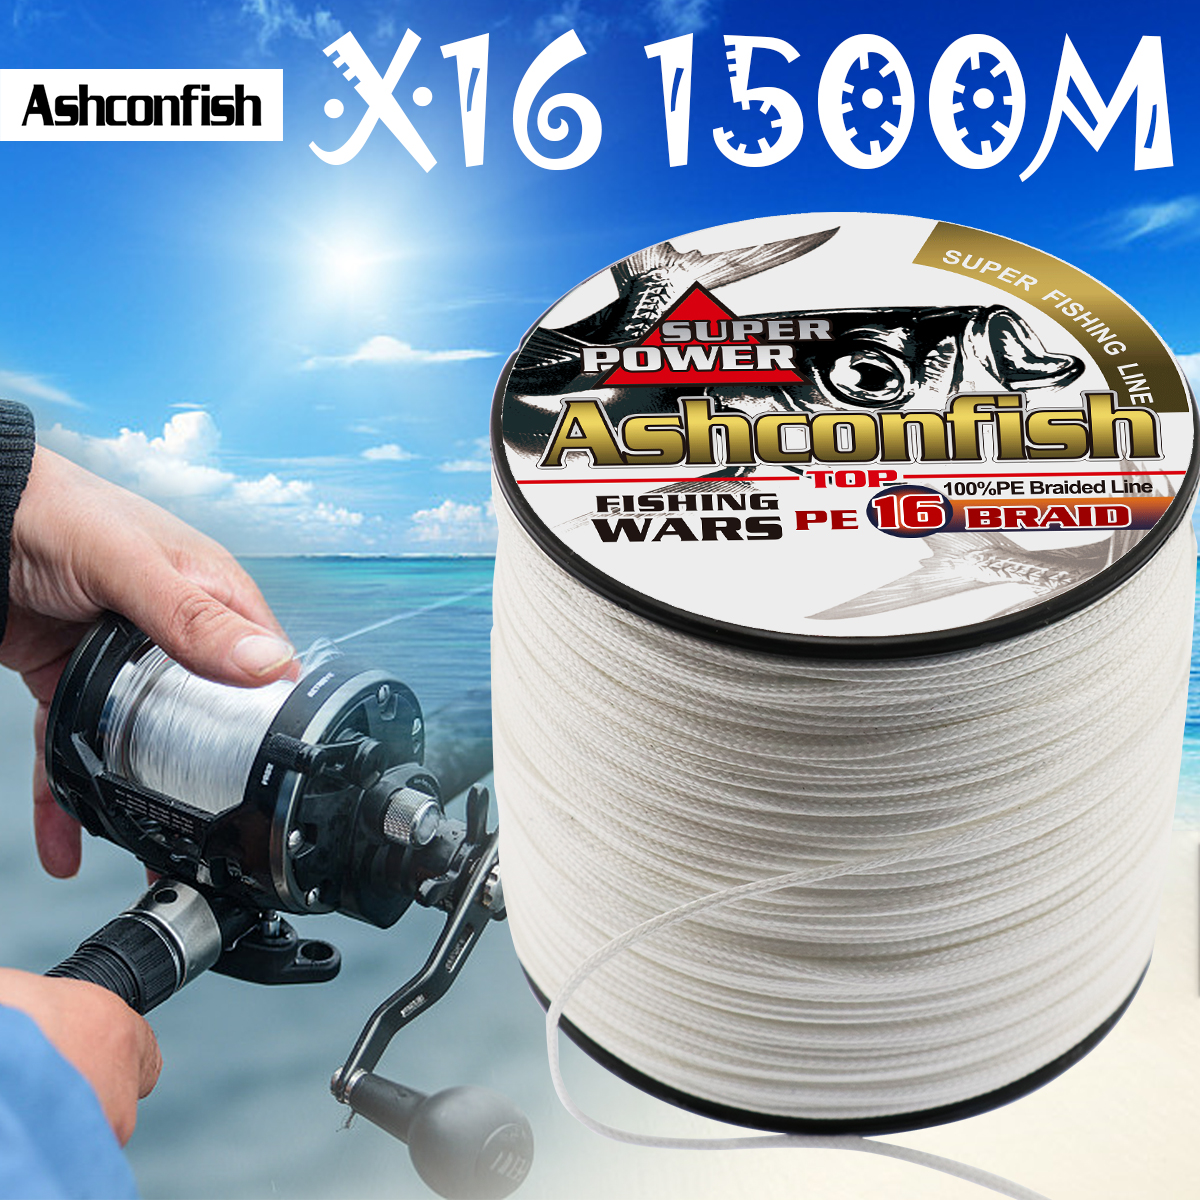 Super hollowcore braided fishing line 1500M 16 Strands pe super Ocean Fishing braided wires 20 500LBS leader line 0.16 2.0mm - 4